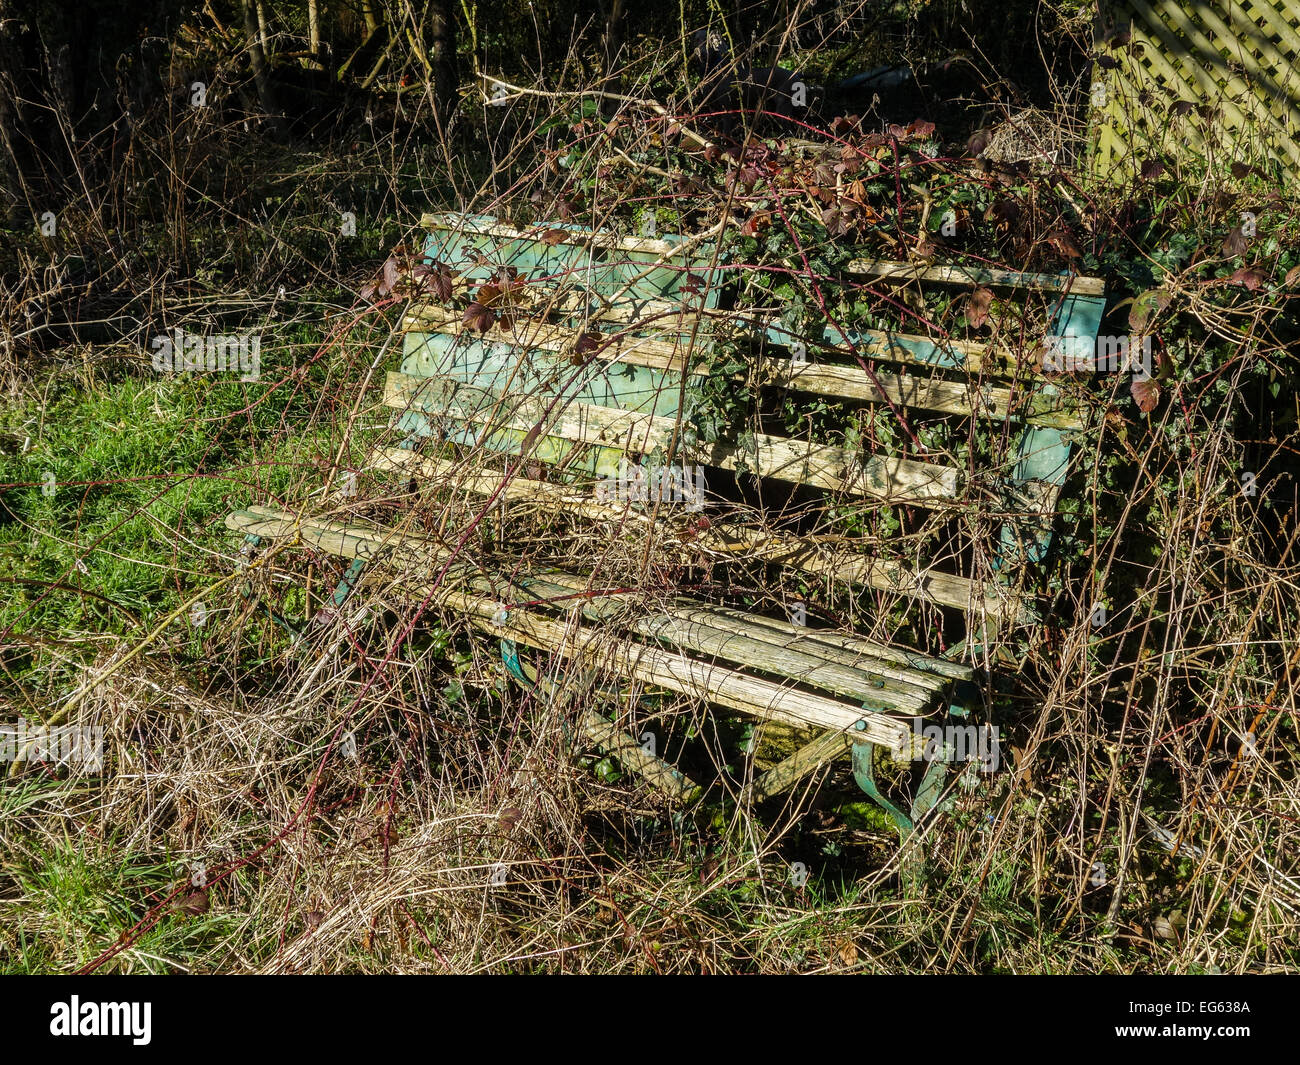 The Forgotten Garden Bench - Stock Image